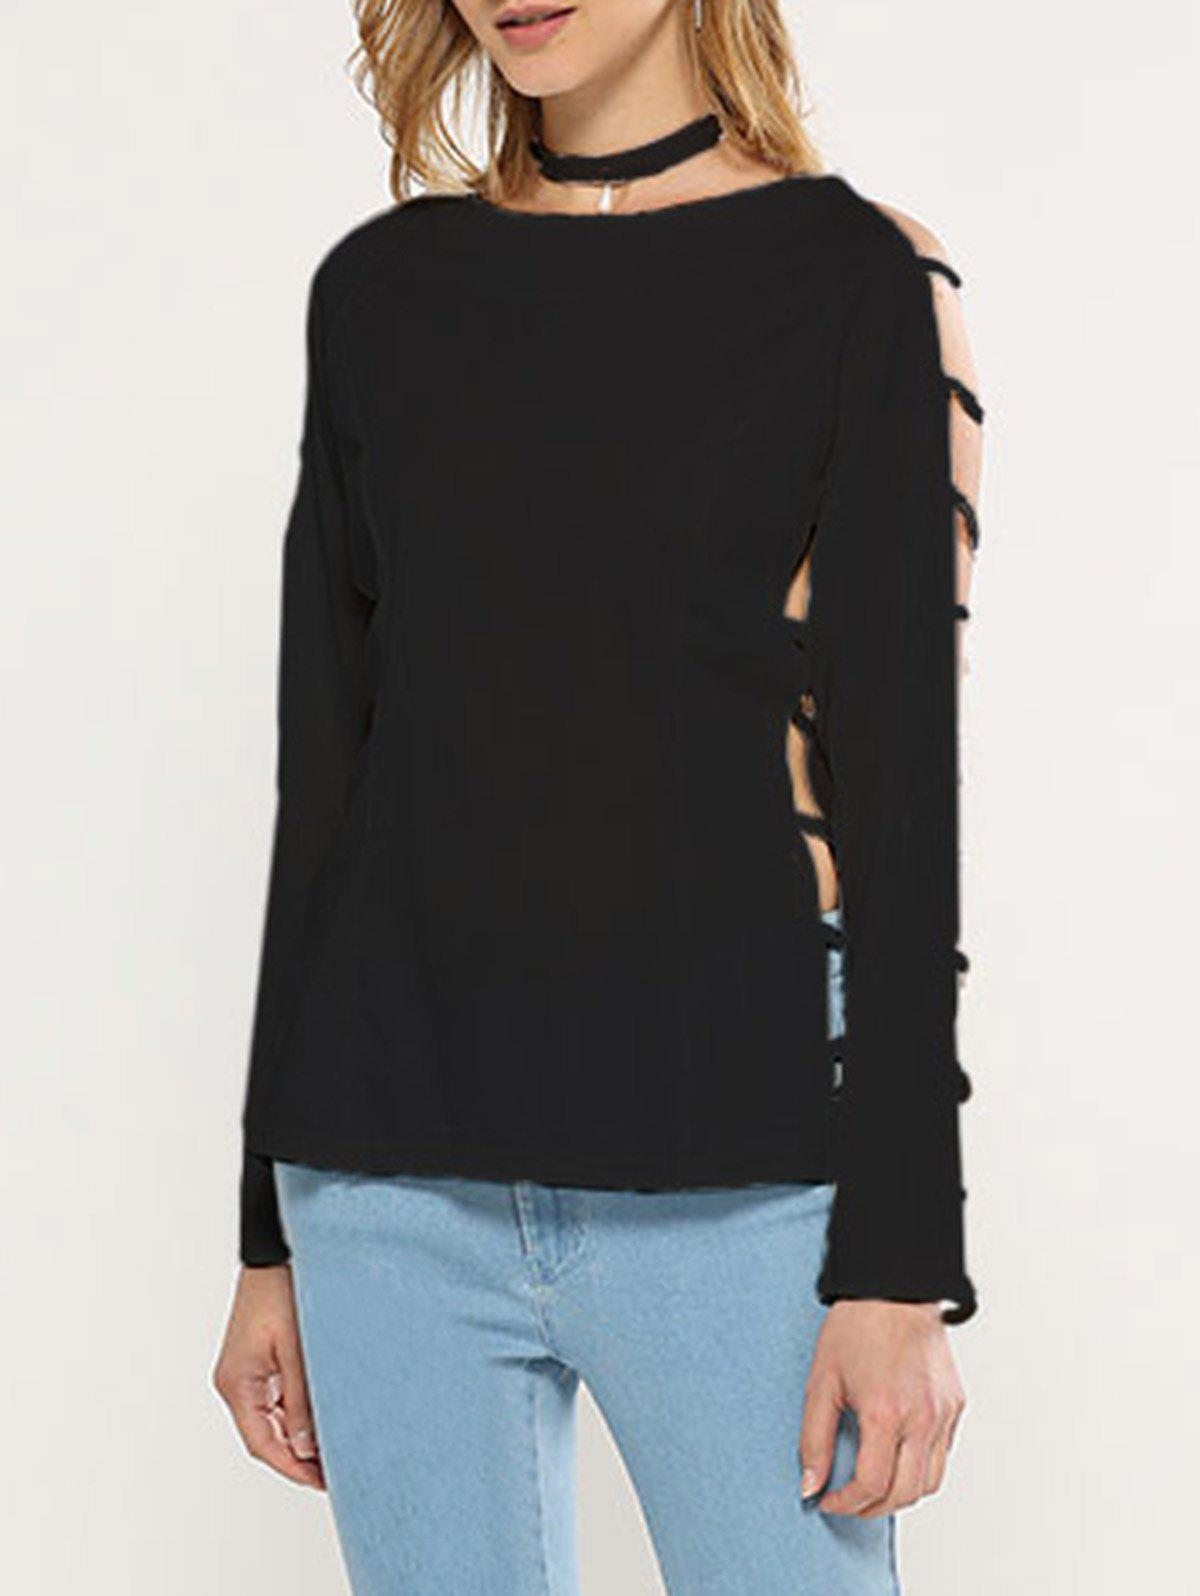 Stylish Round Collar Hollow Sleeve Pure Color Women Knitted BlouseWomen<br><br><br>Size: 2XL<br>Color: BLACK